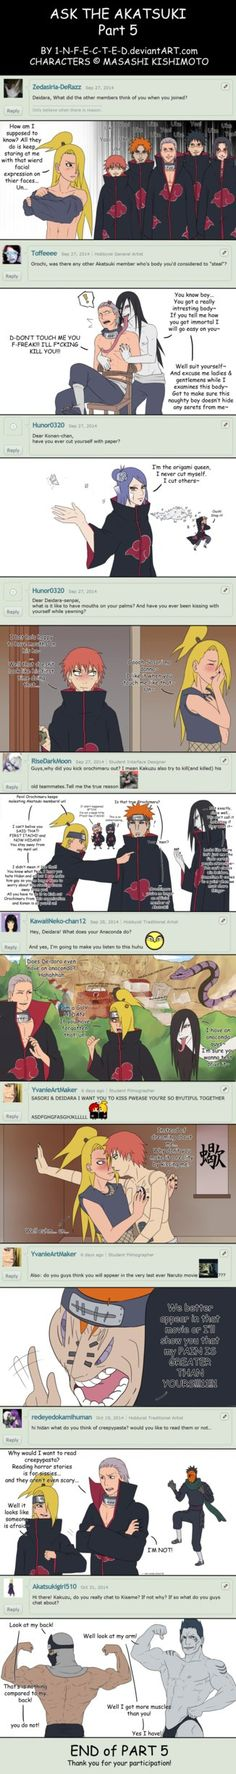 +Ask the AKATSUKI PART 5+ by 1-N-F-E-C-T-E-D.deviantart.com on @DeviantArt